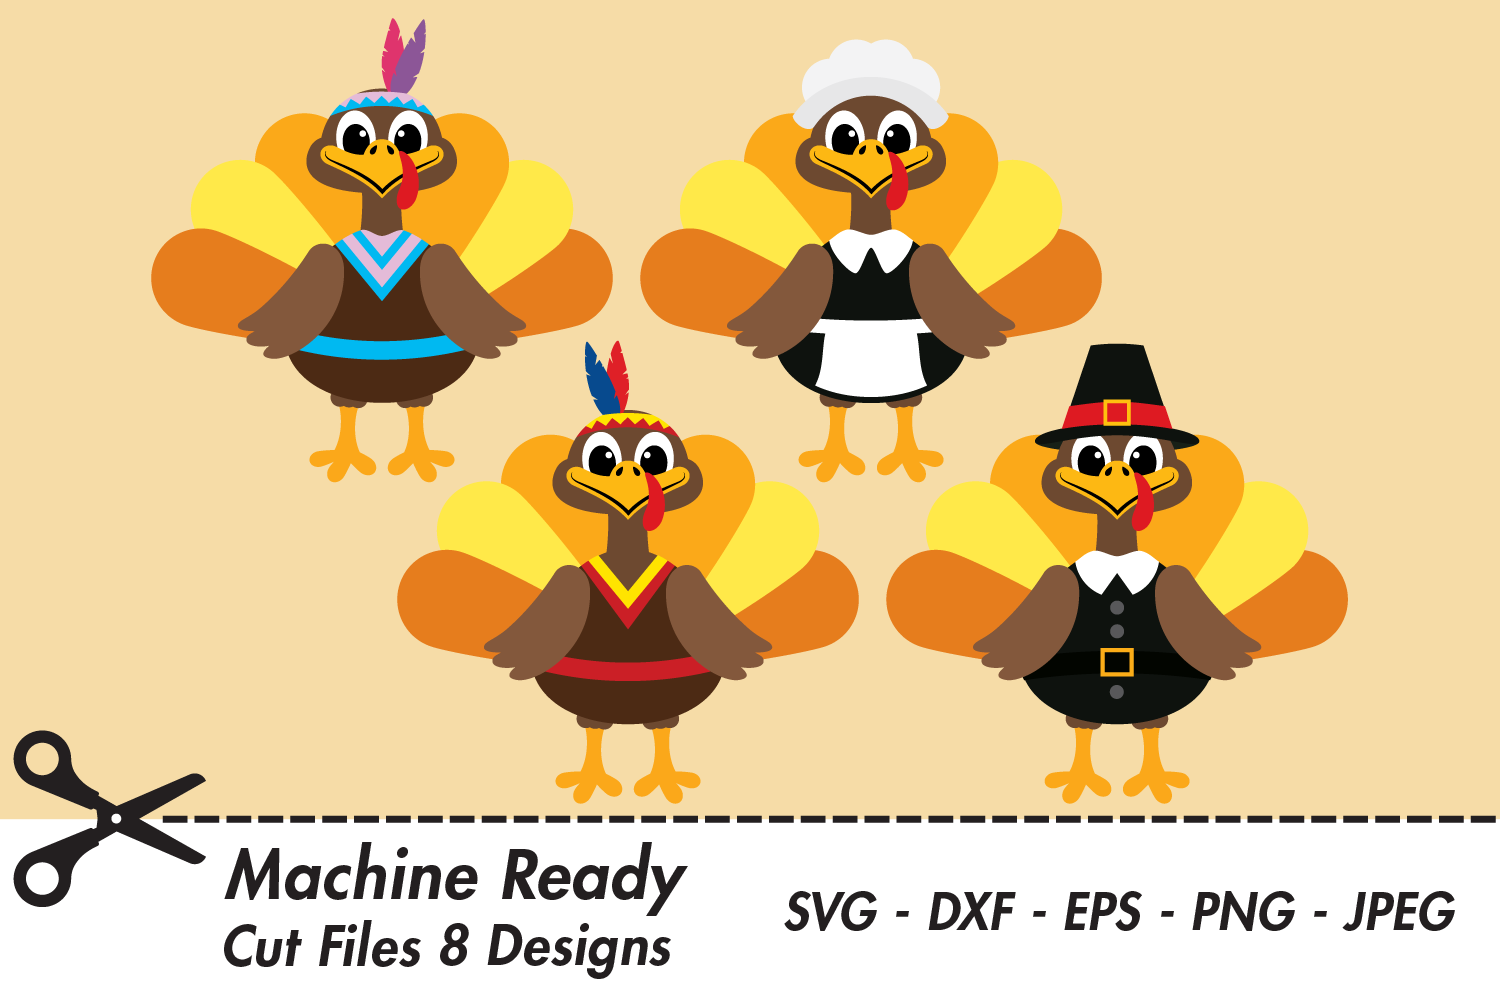 Download Free Cute Thanksgiving Turkey Bundle Graphic By Captaincreative for Cricut Explore, Silhouette and other cutting machines.